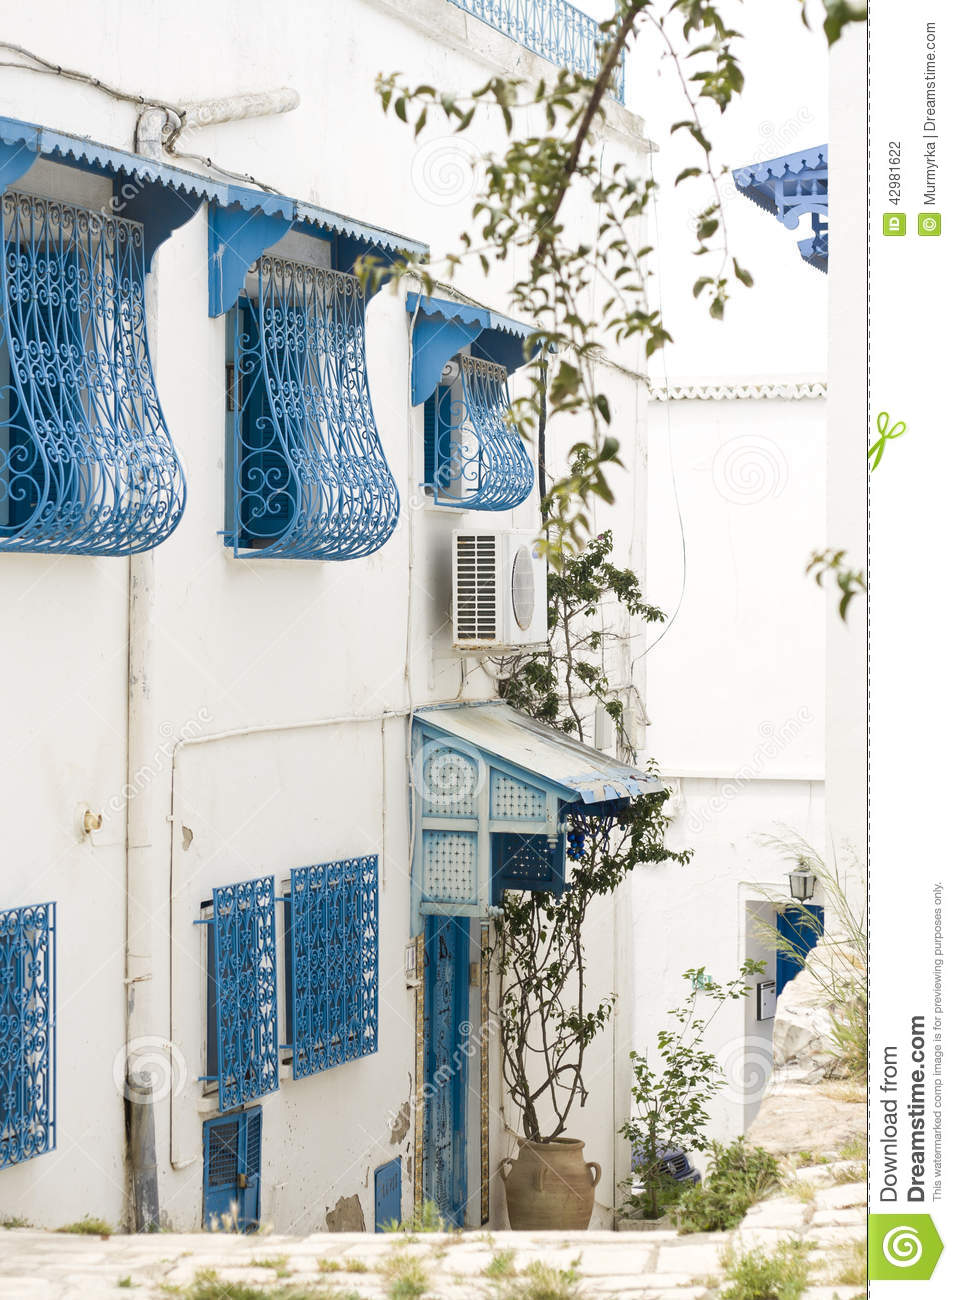 blue doors window and white wall of building in sidi bou said stock photo image 42981622. Black Bedroom Furniture Sets. Home Design Ideas